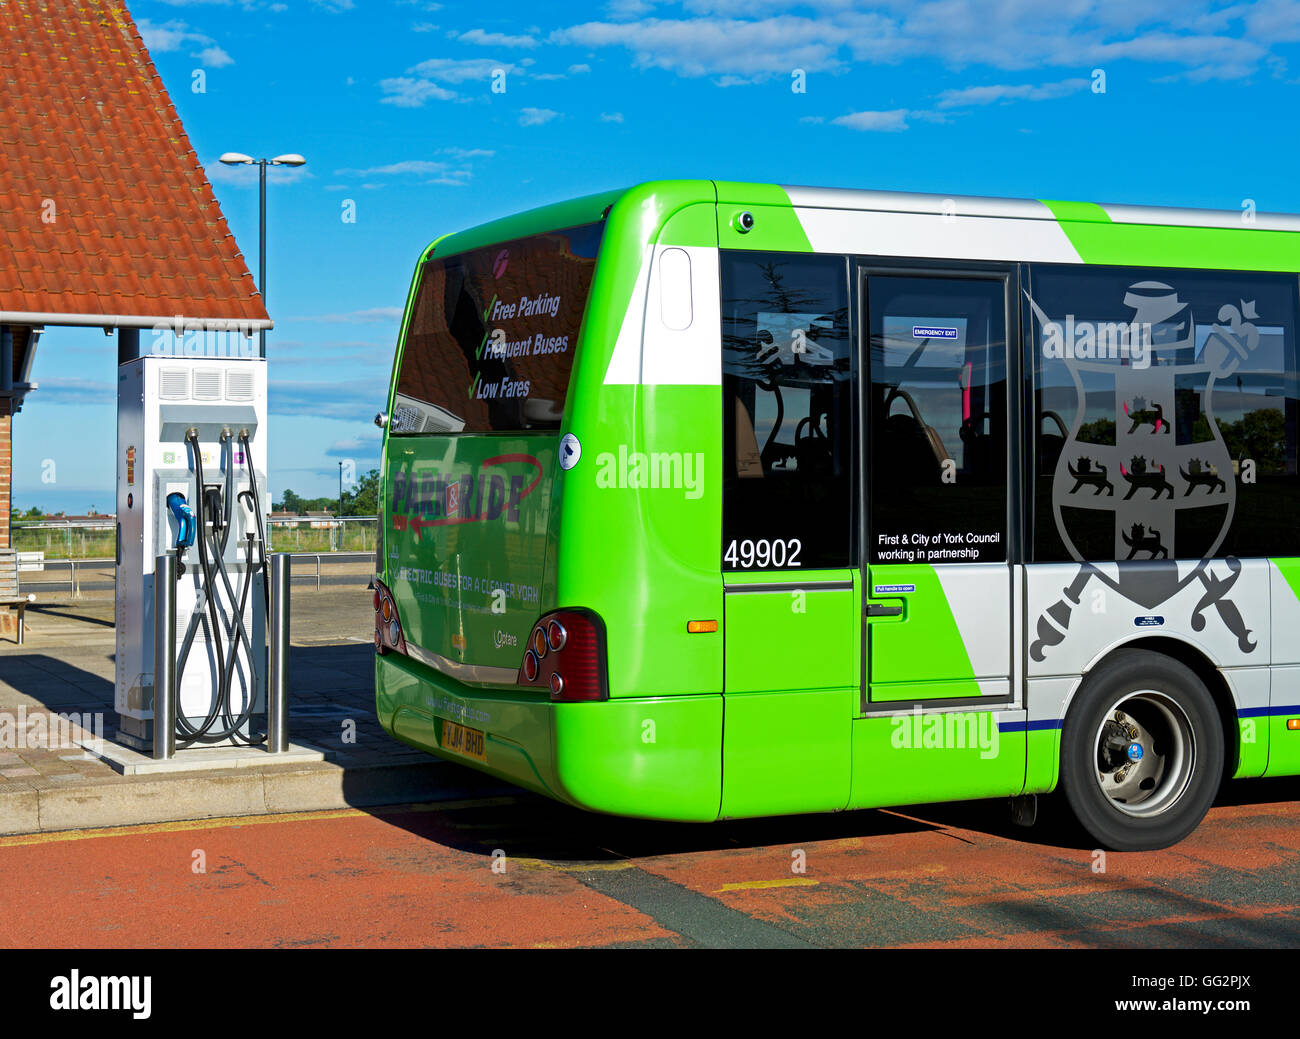 Bus parked at Monks Cross Park & Ride facility, near York, North Yorkshire, England UK - Stock Image